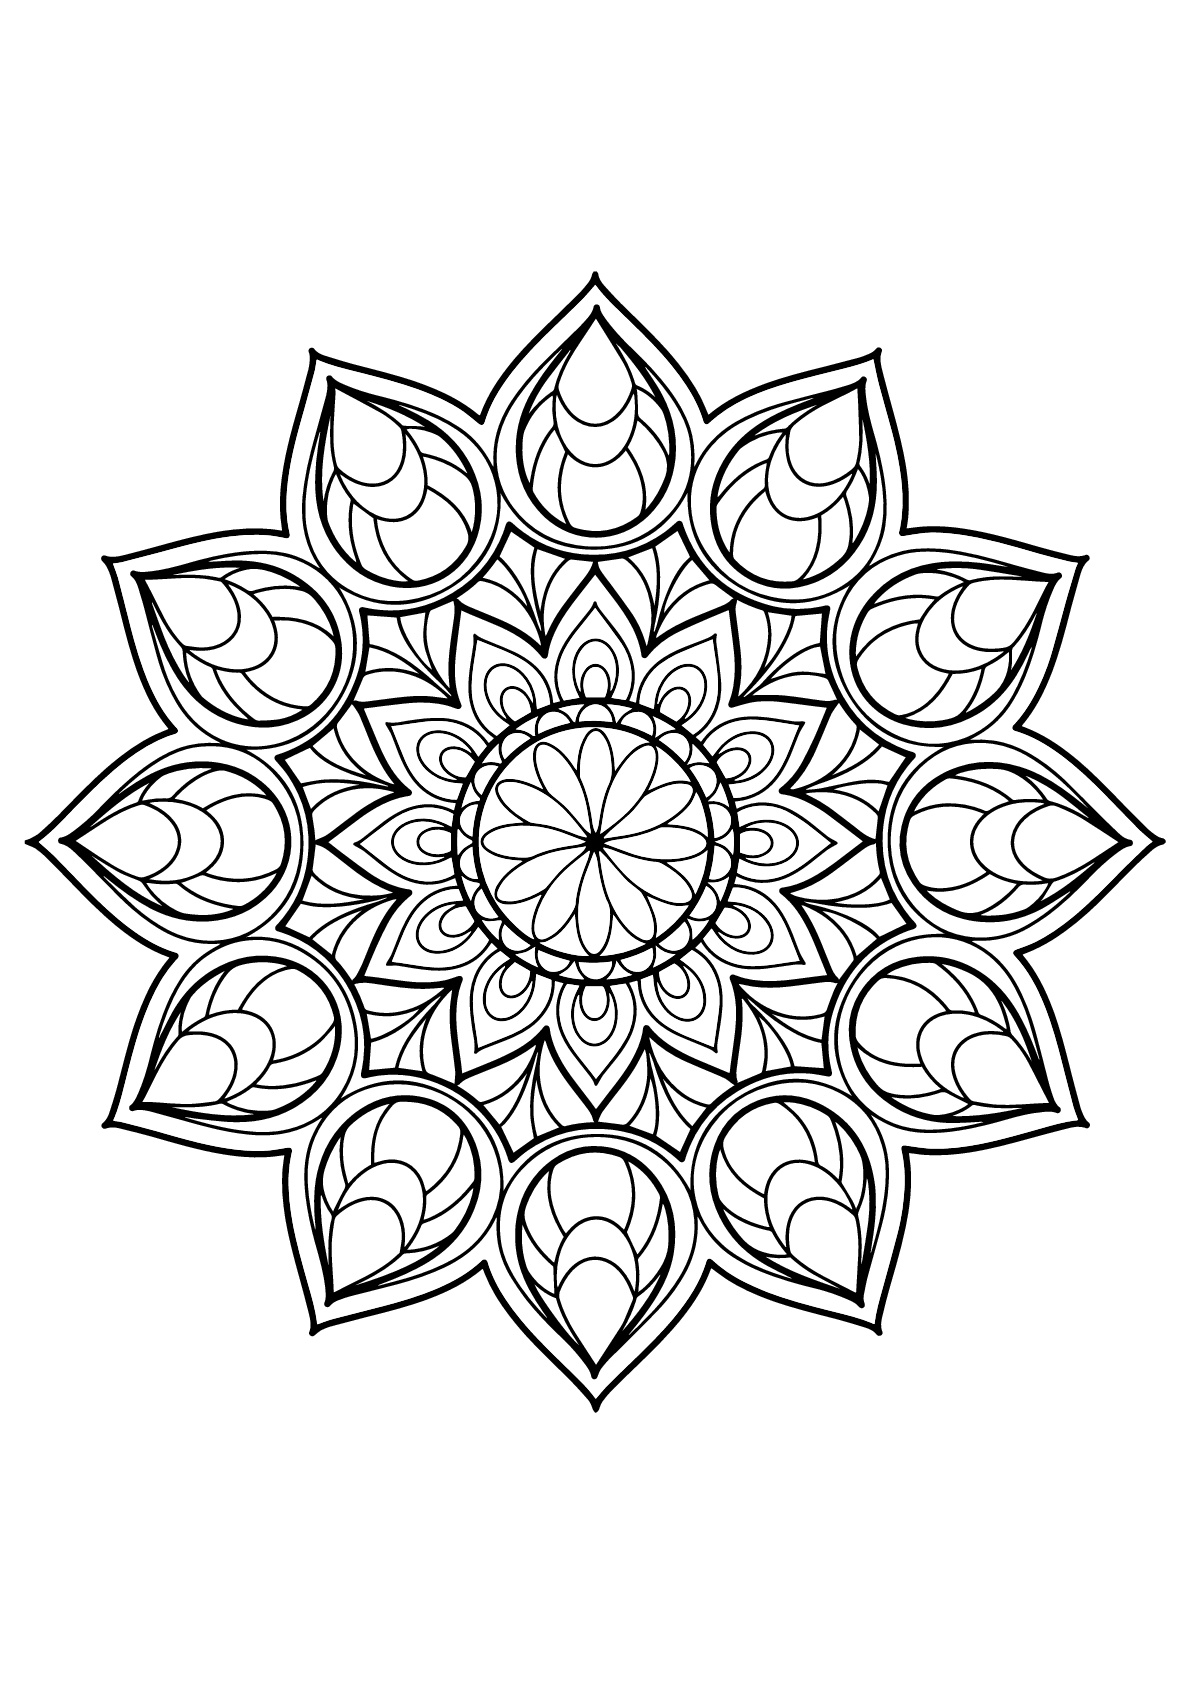 free printable mandala pages pin by binder on new mandalas in 2020 mandala coloring printable free mandala pages